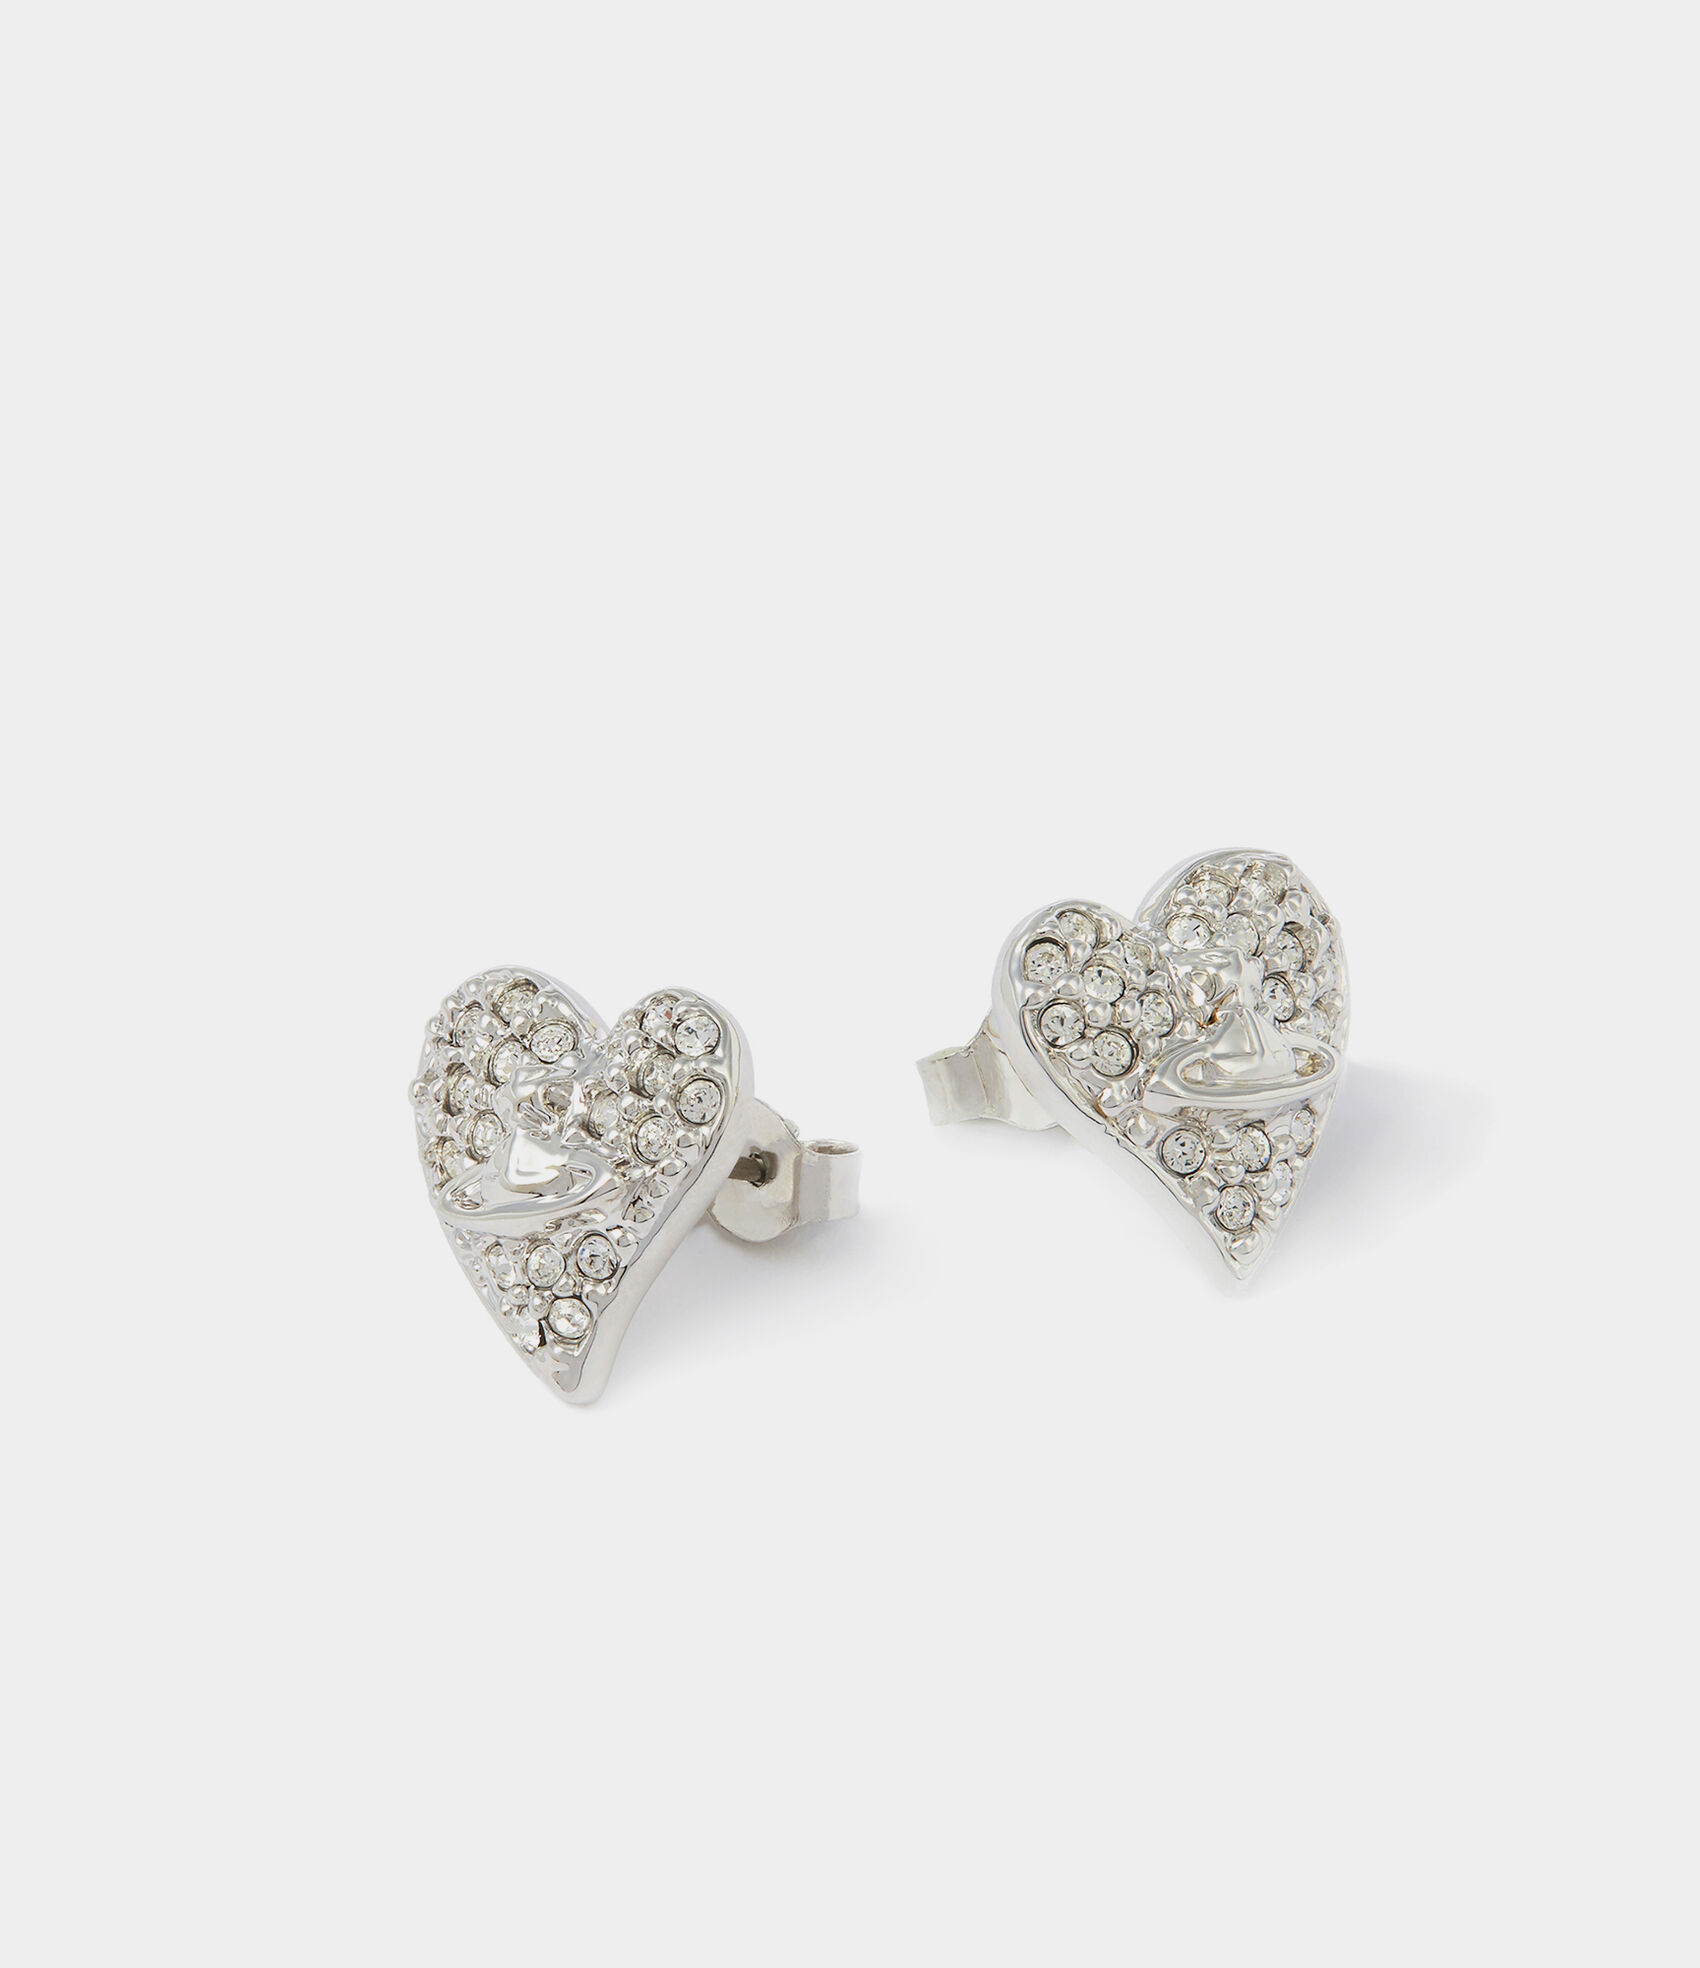 41d02910f Tiny Diamante Earrings Rhodium | Women's Earrings | Vivienne ...